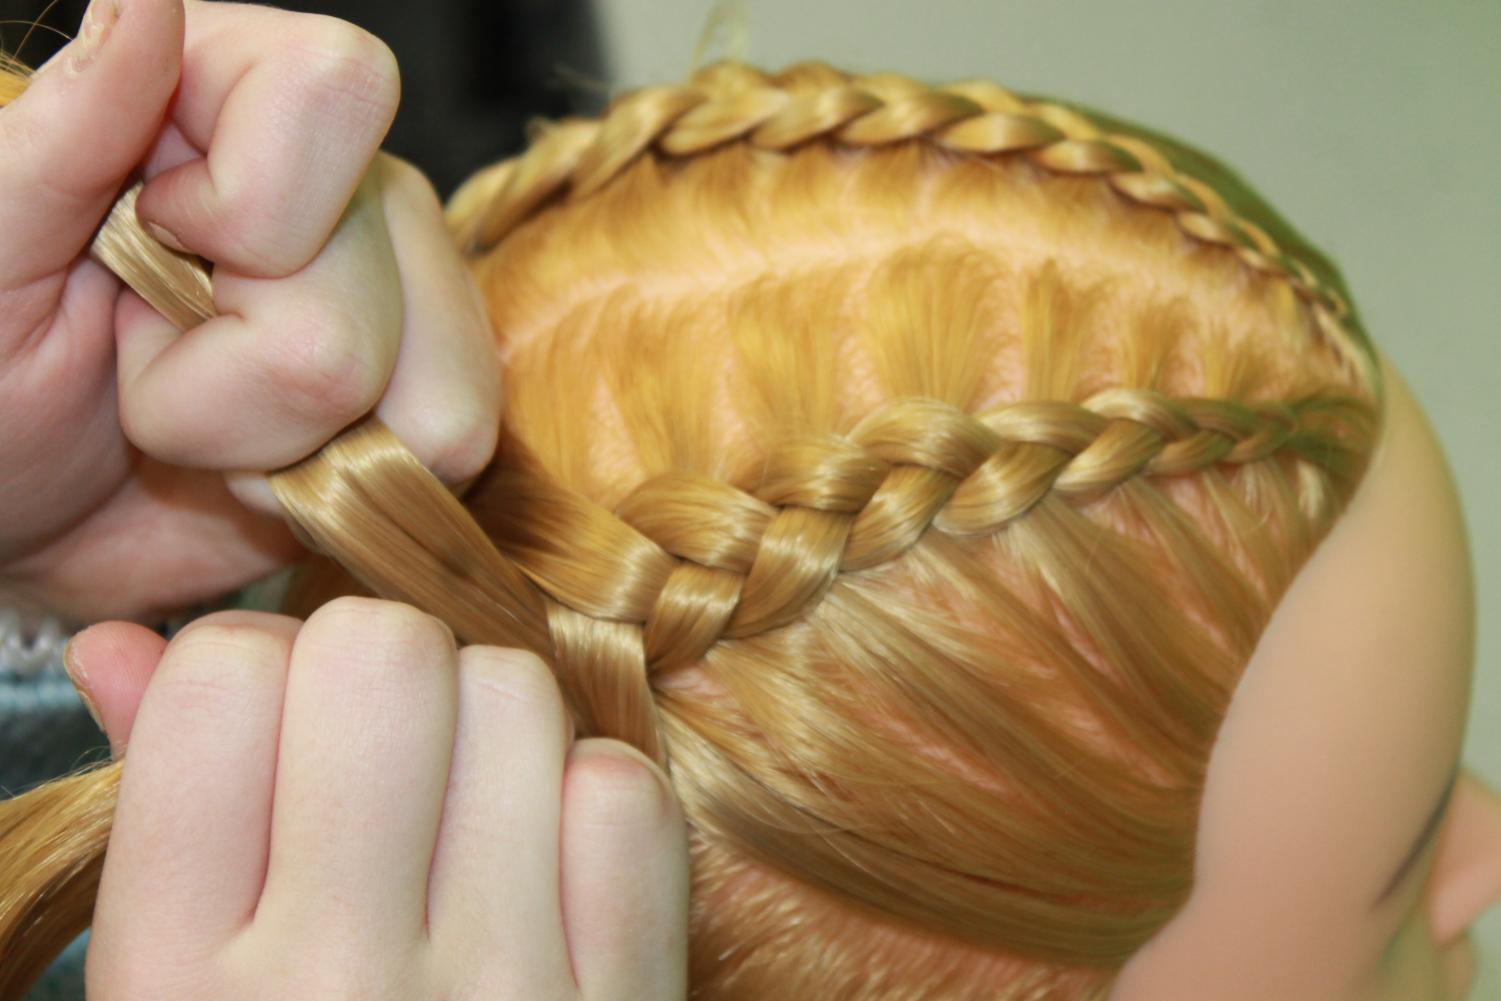 %2ATry+to+keep+the+braid+firmly+in+your+hands+so+that+your+braid+does+not+fall+out+as+easily+during+the+day.%2A